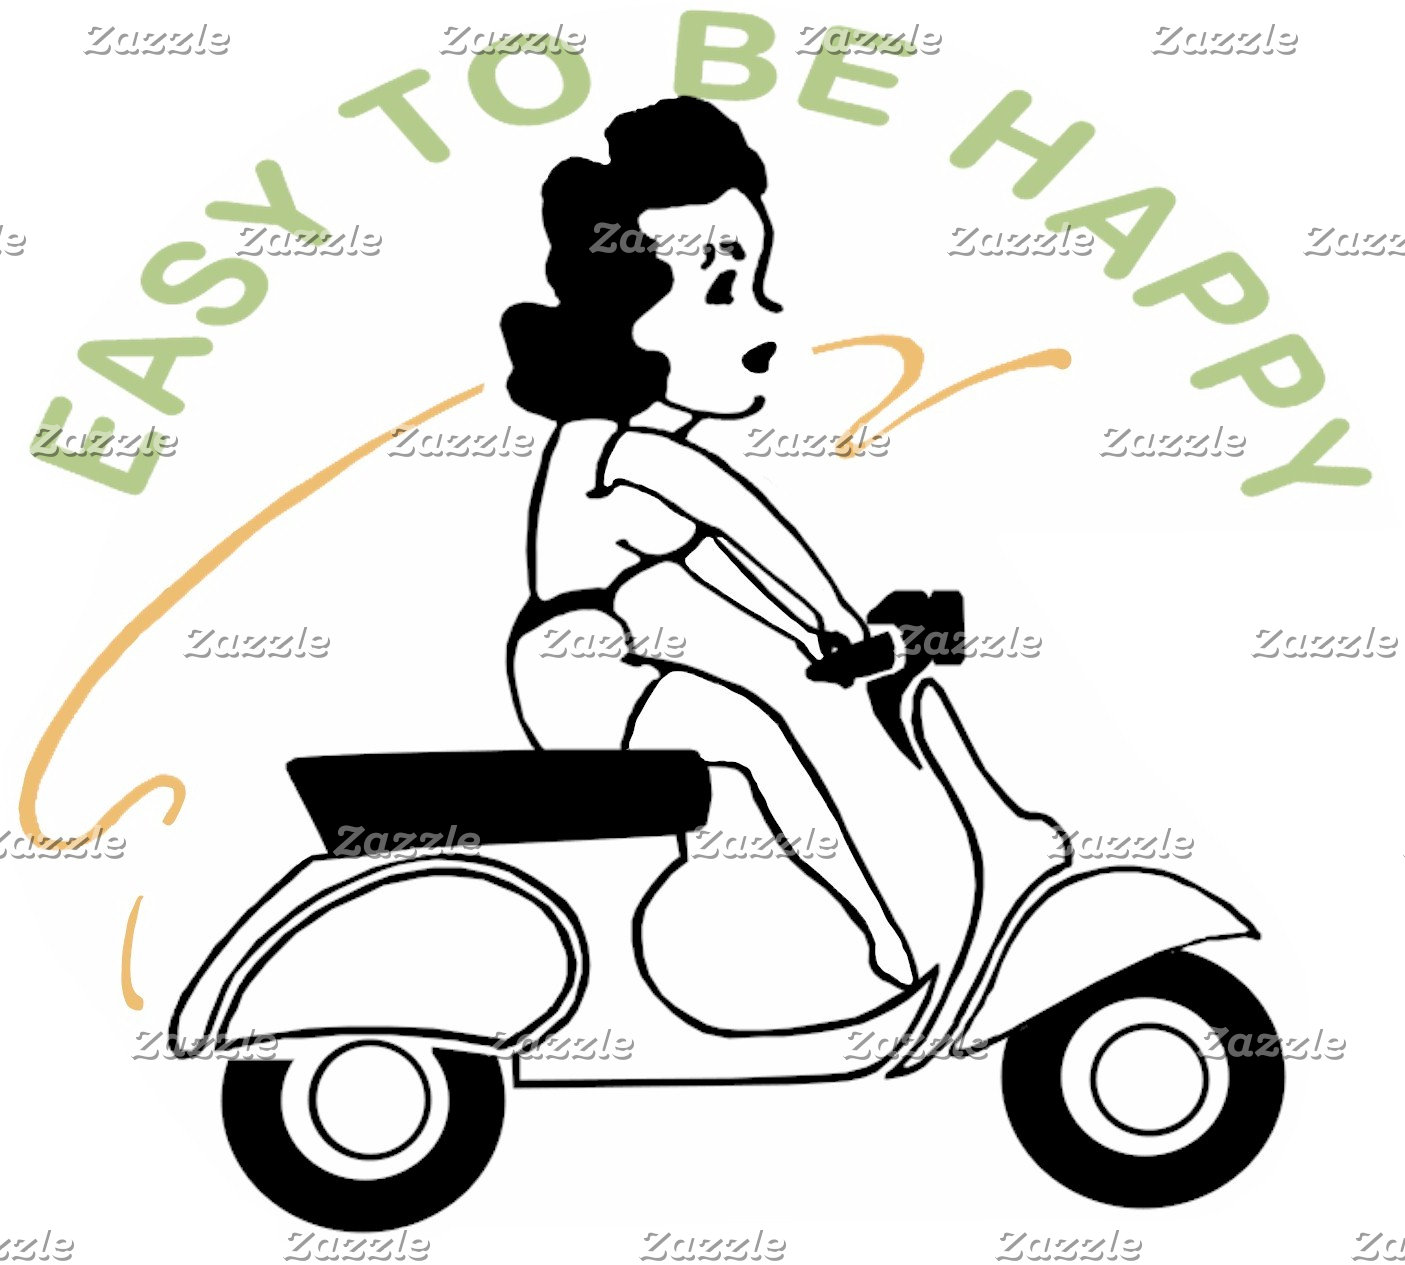 Easy To Be Happy - Vintage Scooter